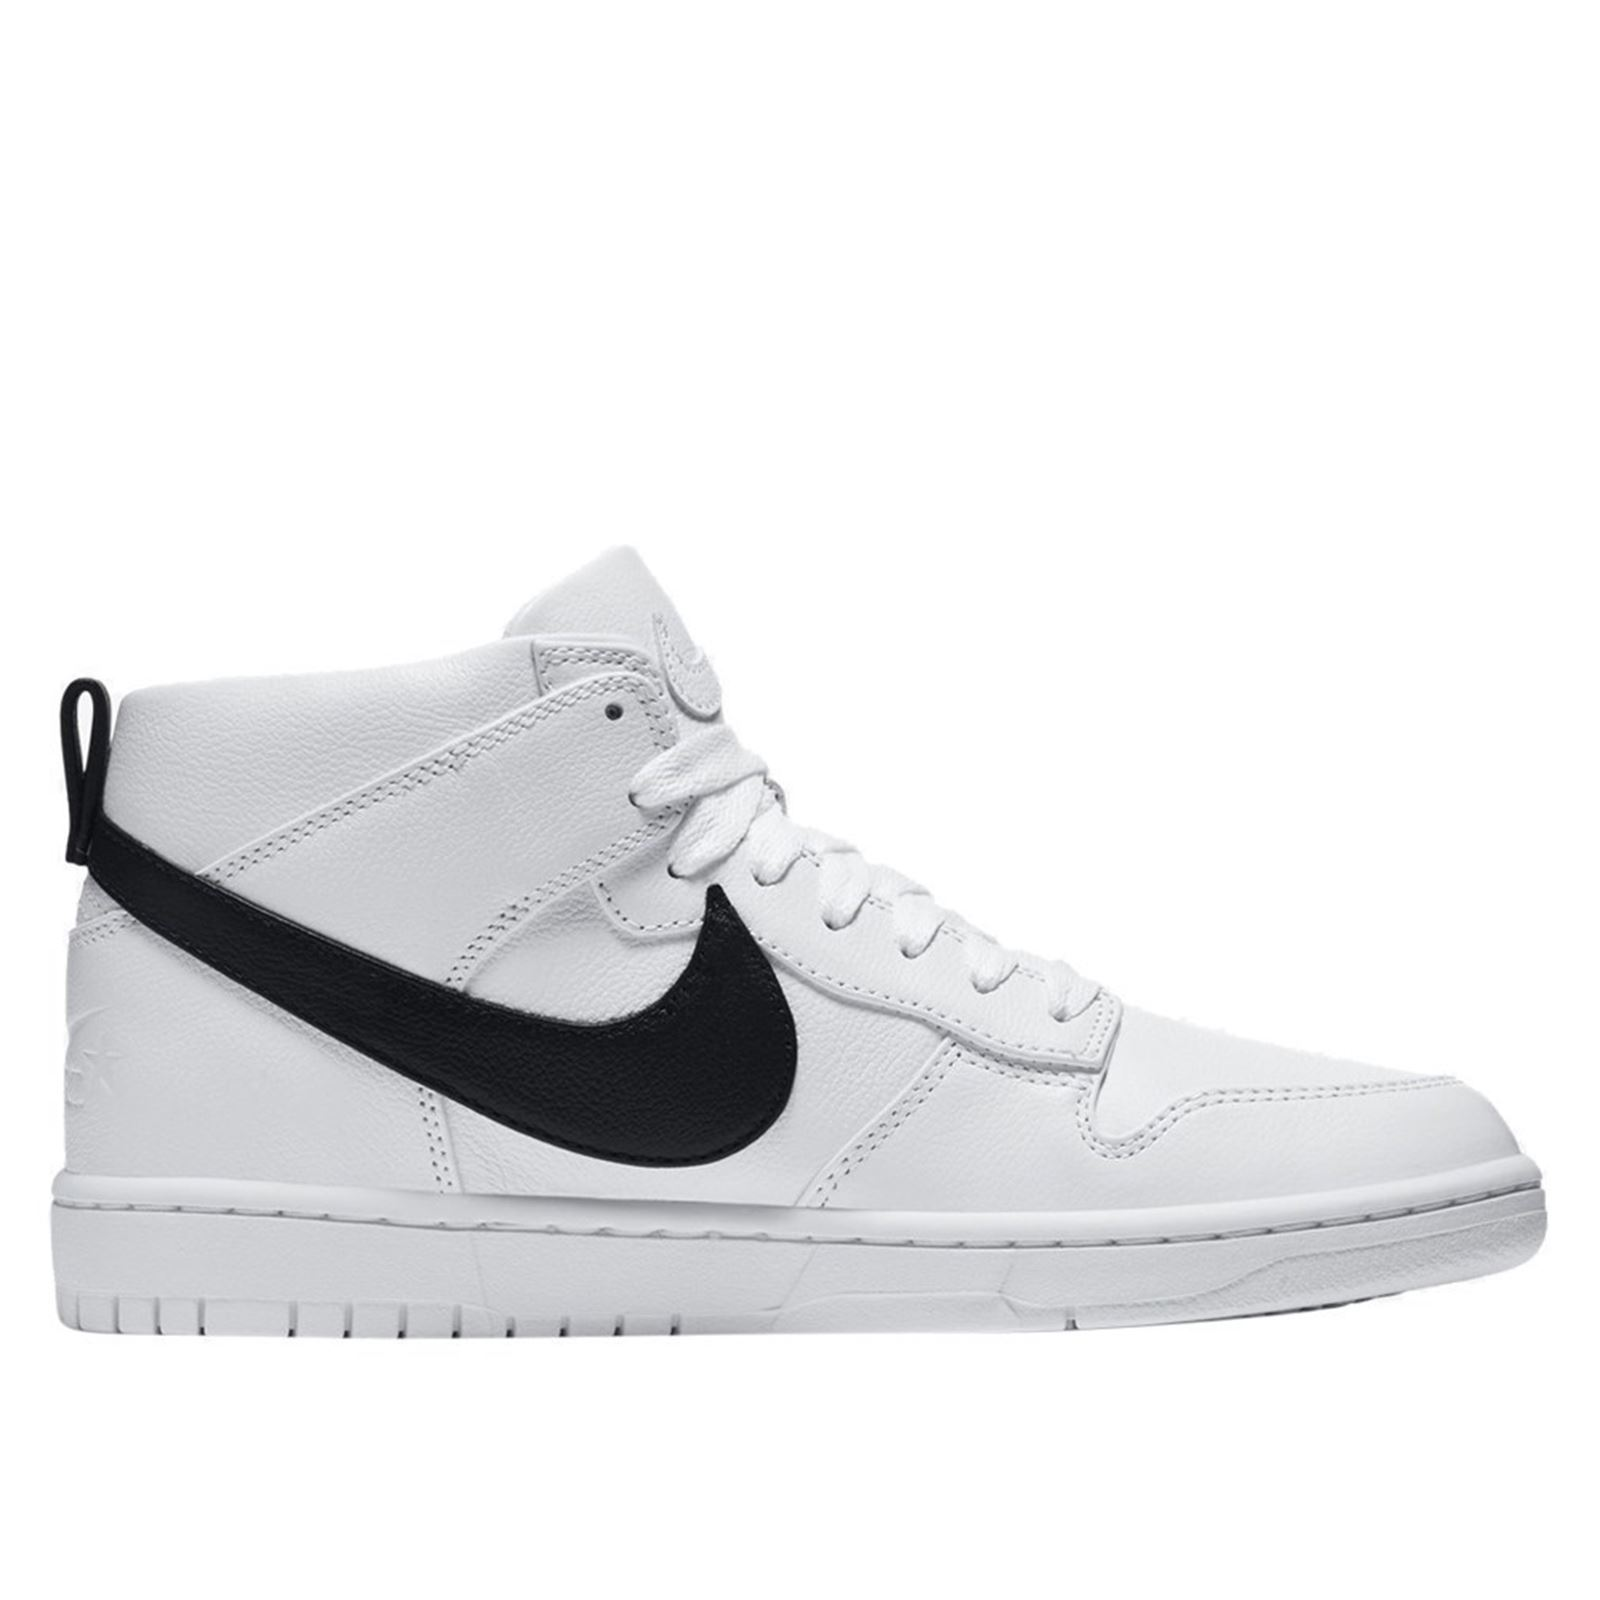 buy popular ff098 ad39c NIKE Dunk lux chukka rt - Baskets montantes - blanc